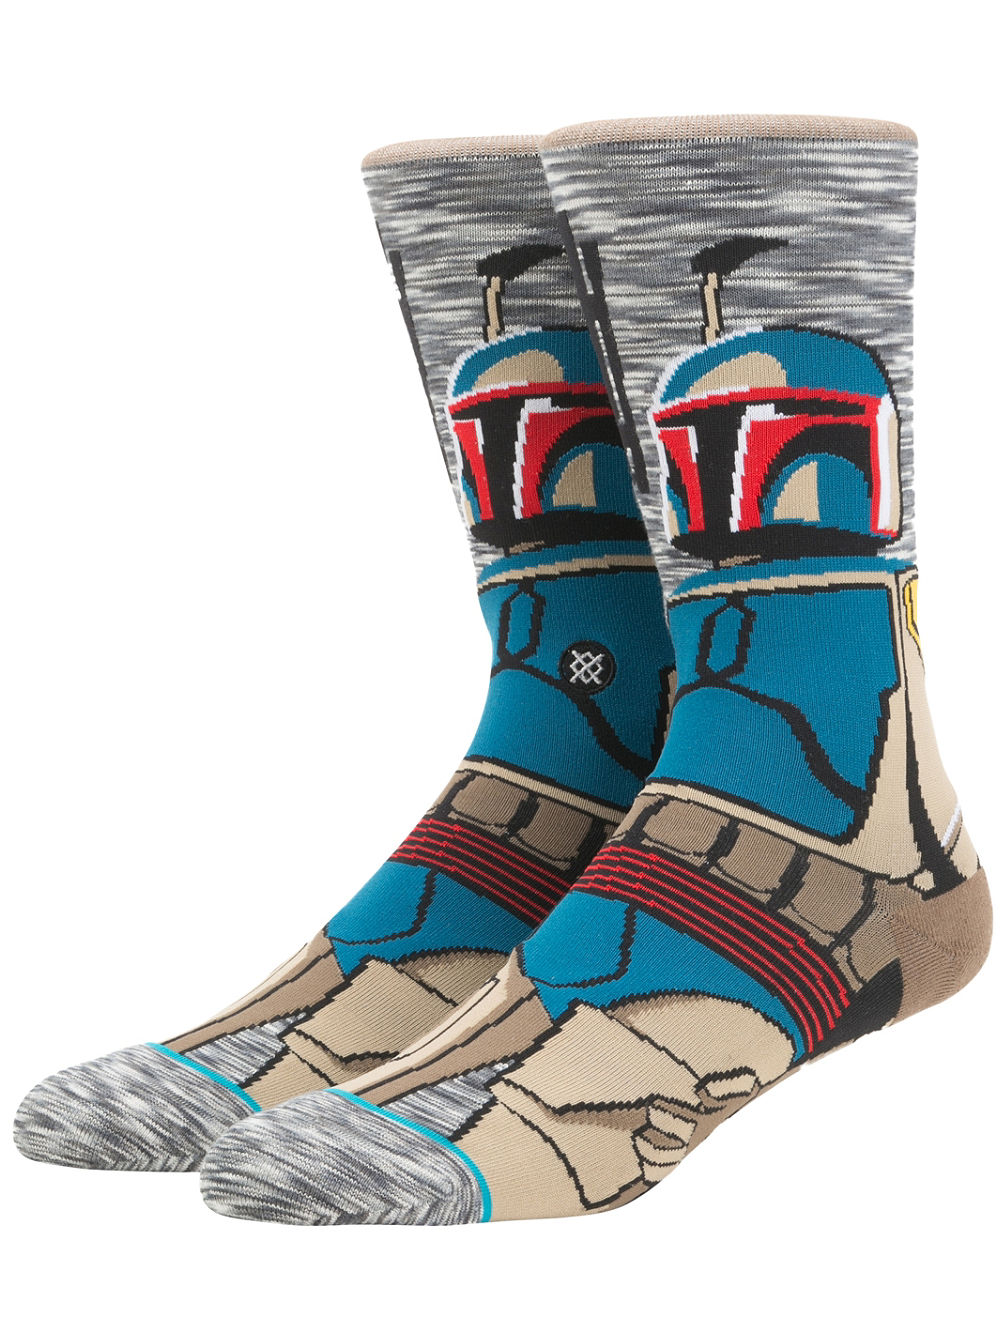 Bounty Hunter Star Wars Socken